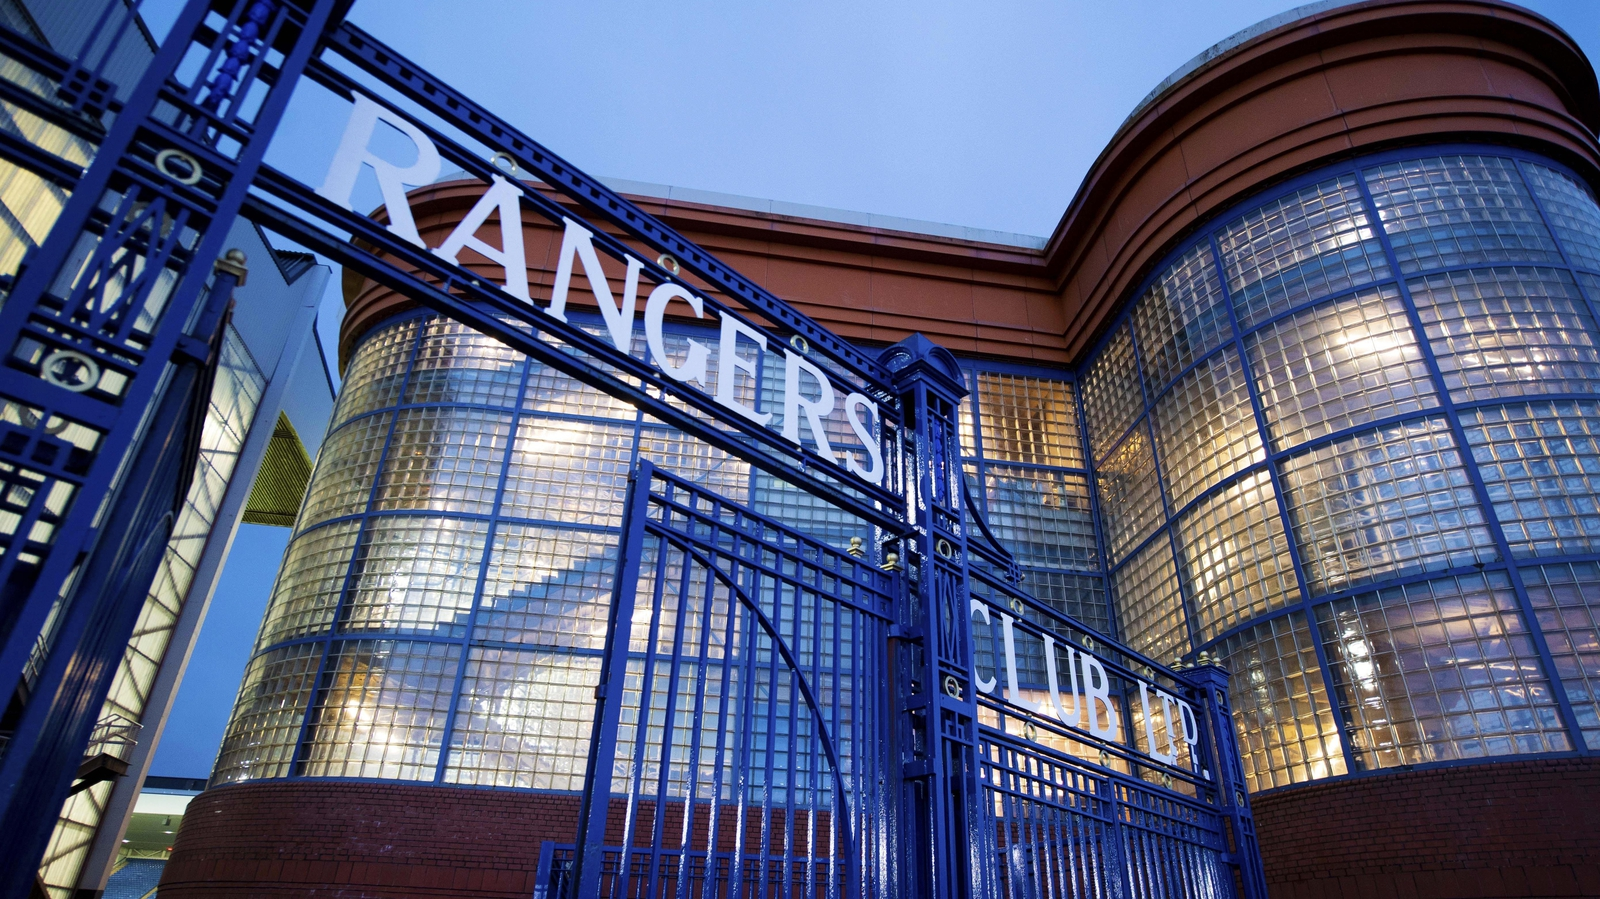 Rangers return positive Covid tests ahead of Old Firm